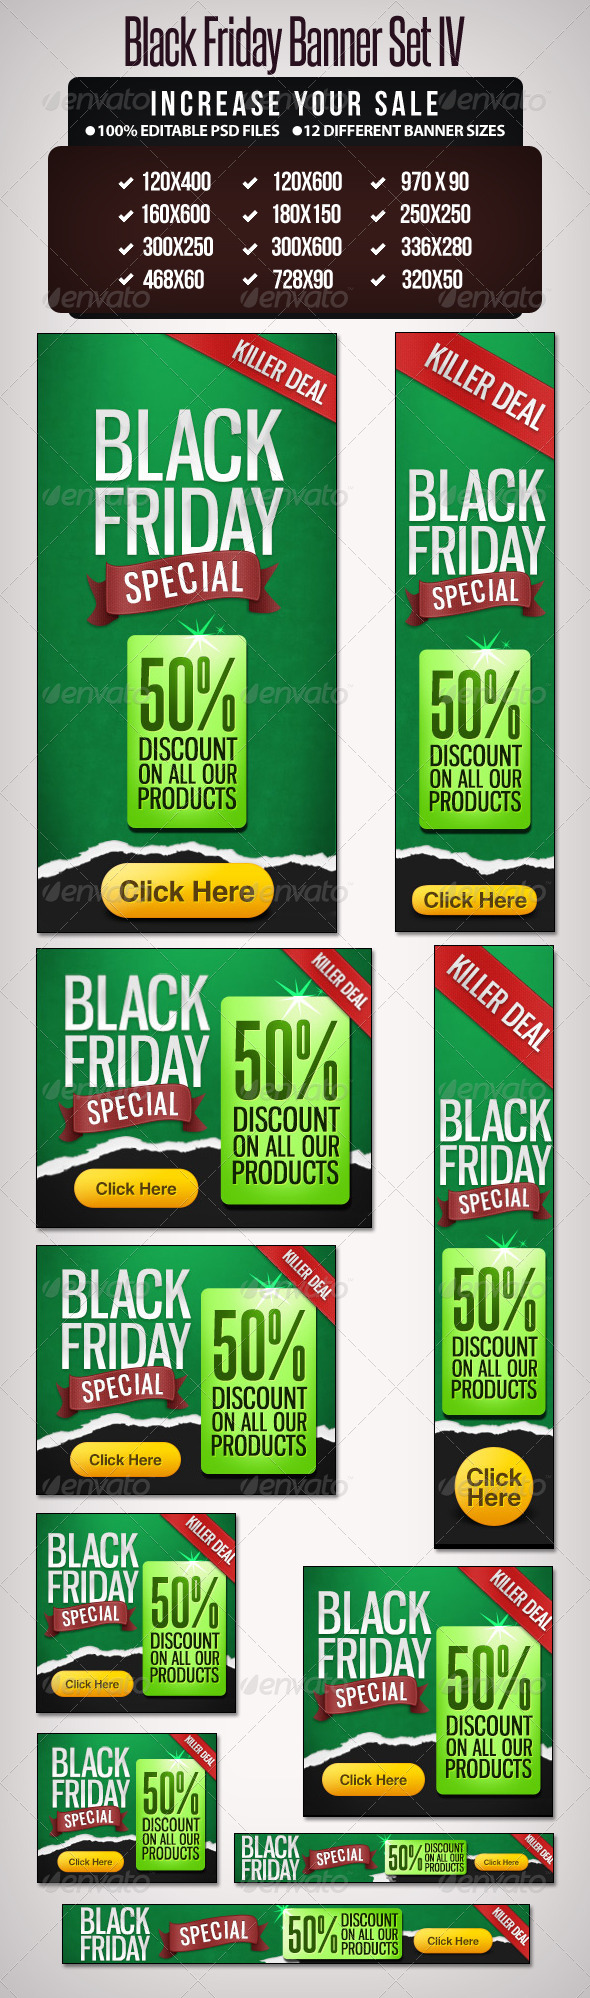 Black Friday Banner Set - 4 - Banners & Ads Web Elements